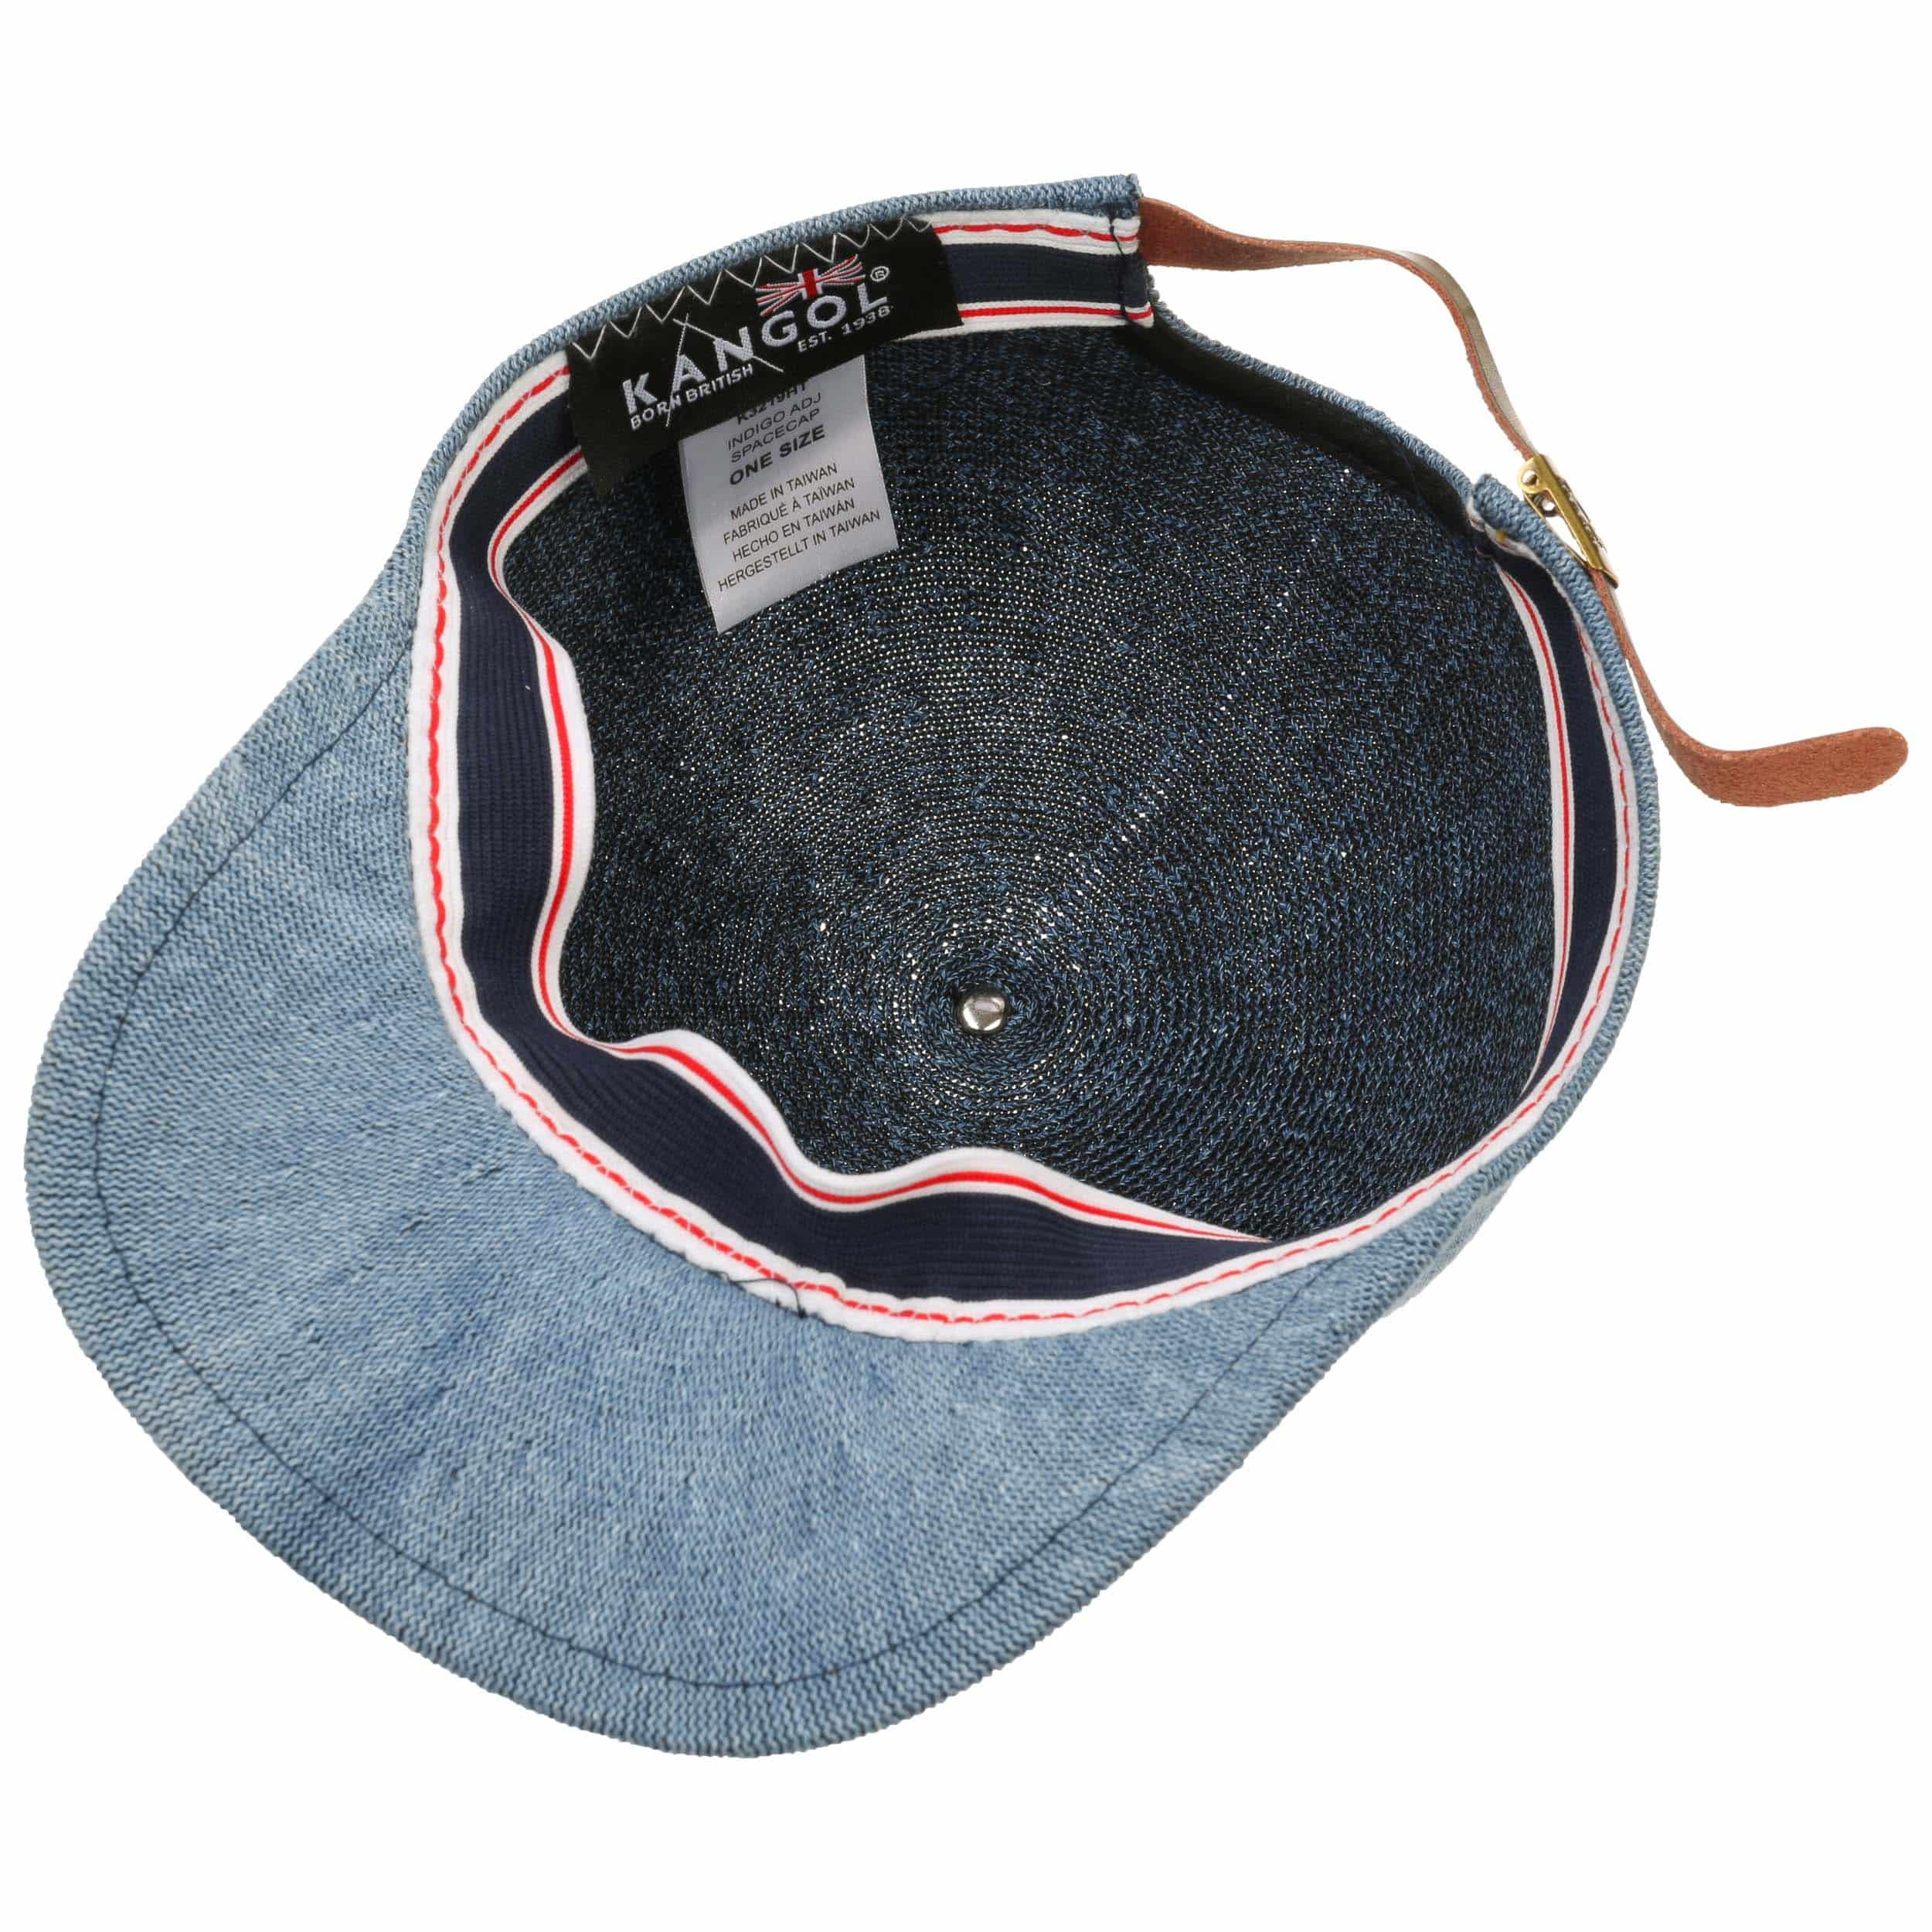 92db8202241 ... Adjustable Baseball Cap by Kangol - blue 2 ...